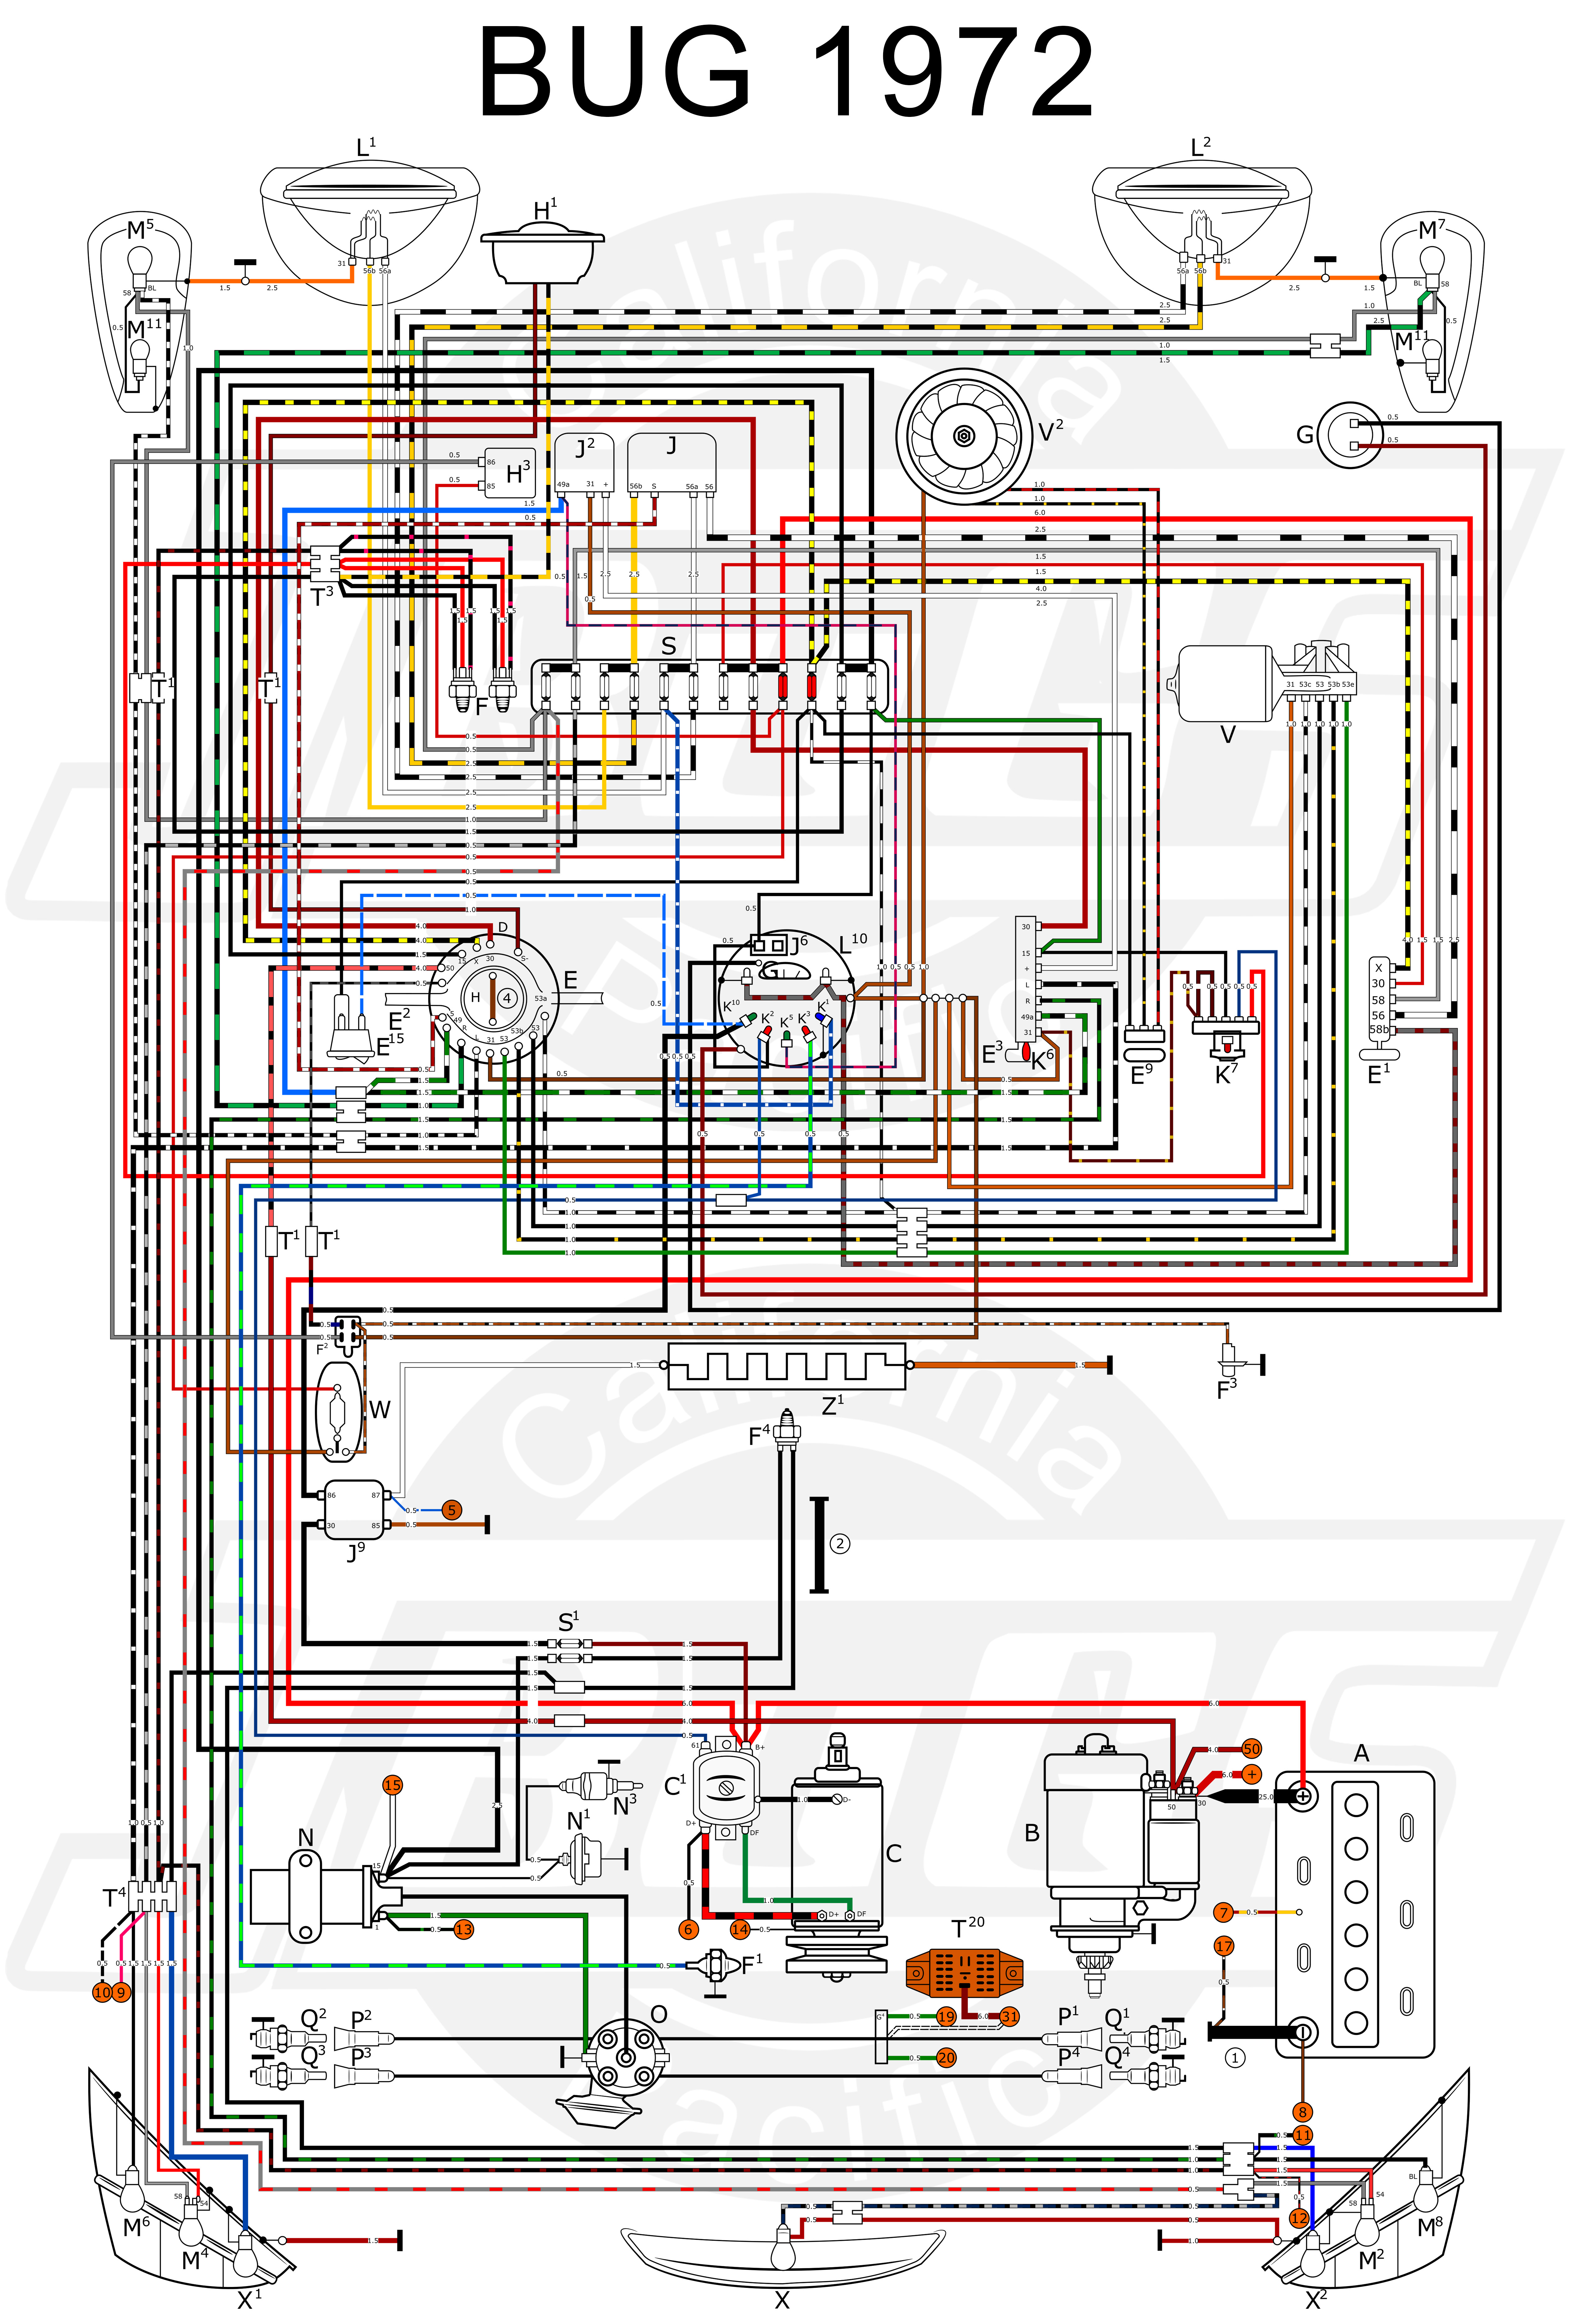 vehicle fuel tank schematic wire data schema u2022 rh vsetop co Chevy Truck Wiring Diagram 2007 Silverado Radio Wiring Diagram